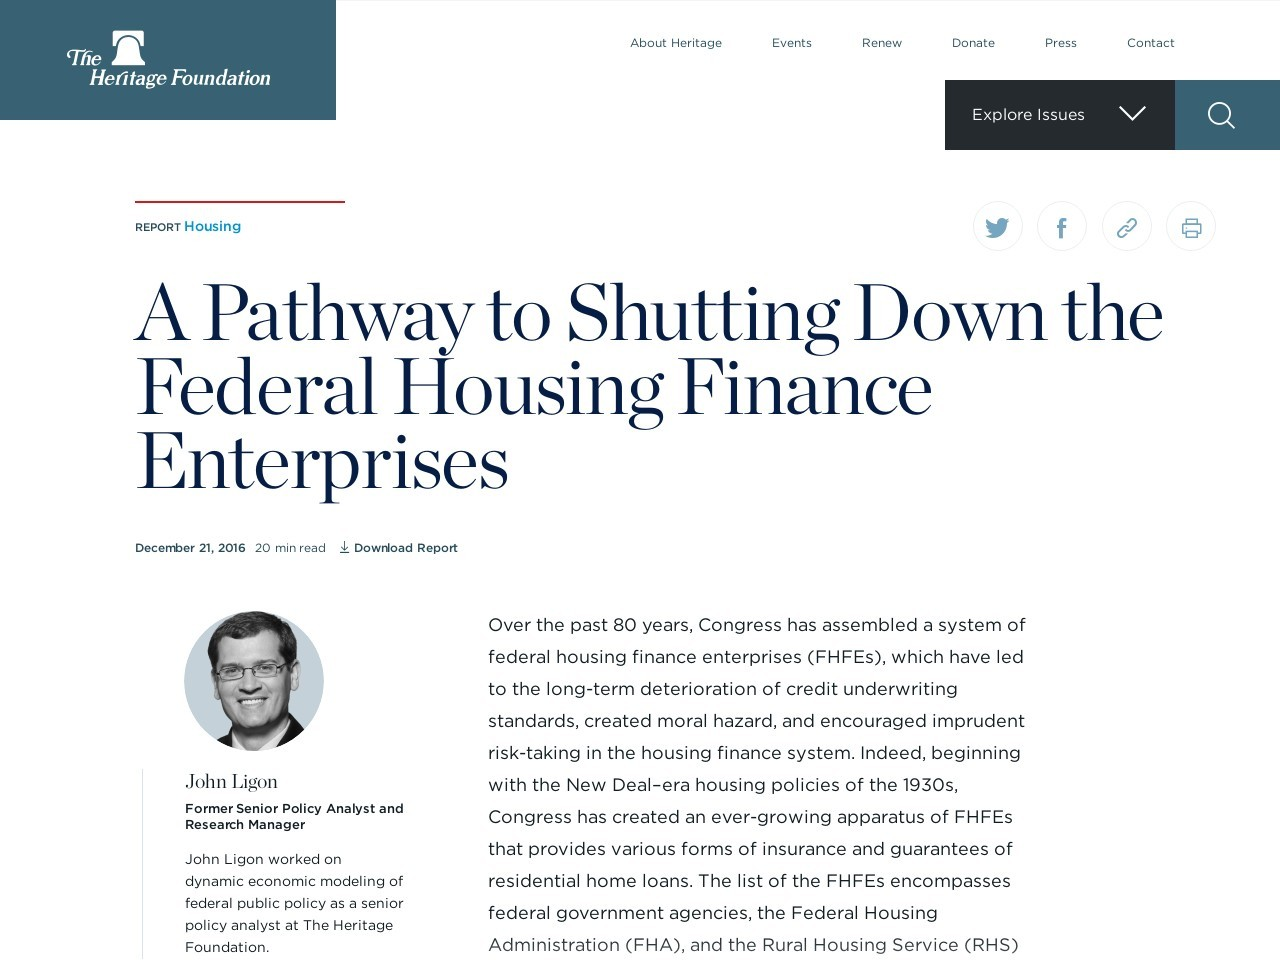 A Pathway to Shutting Down the Federal Housing Finance Enterprises